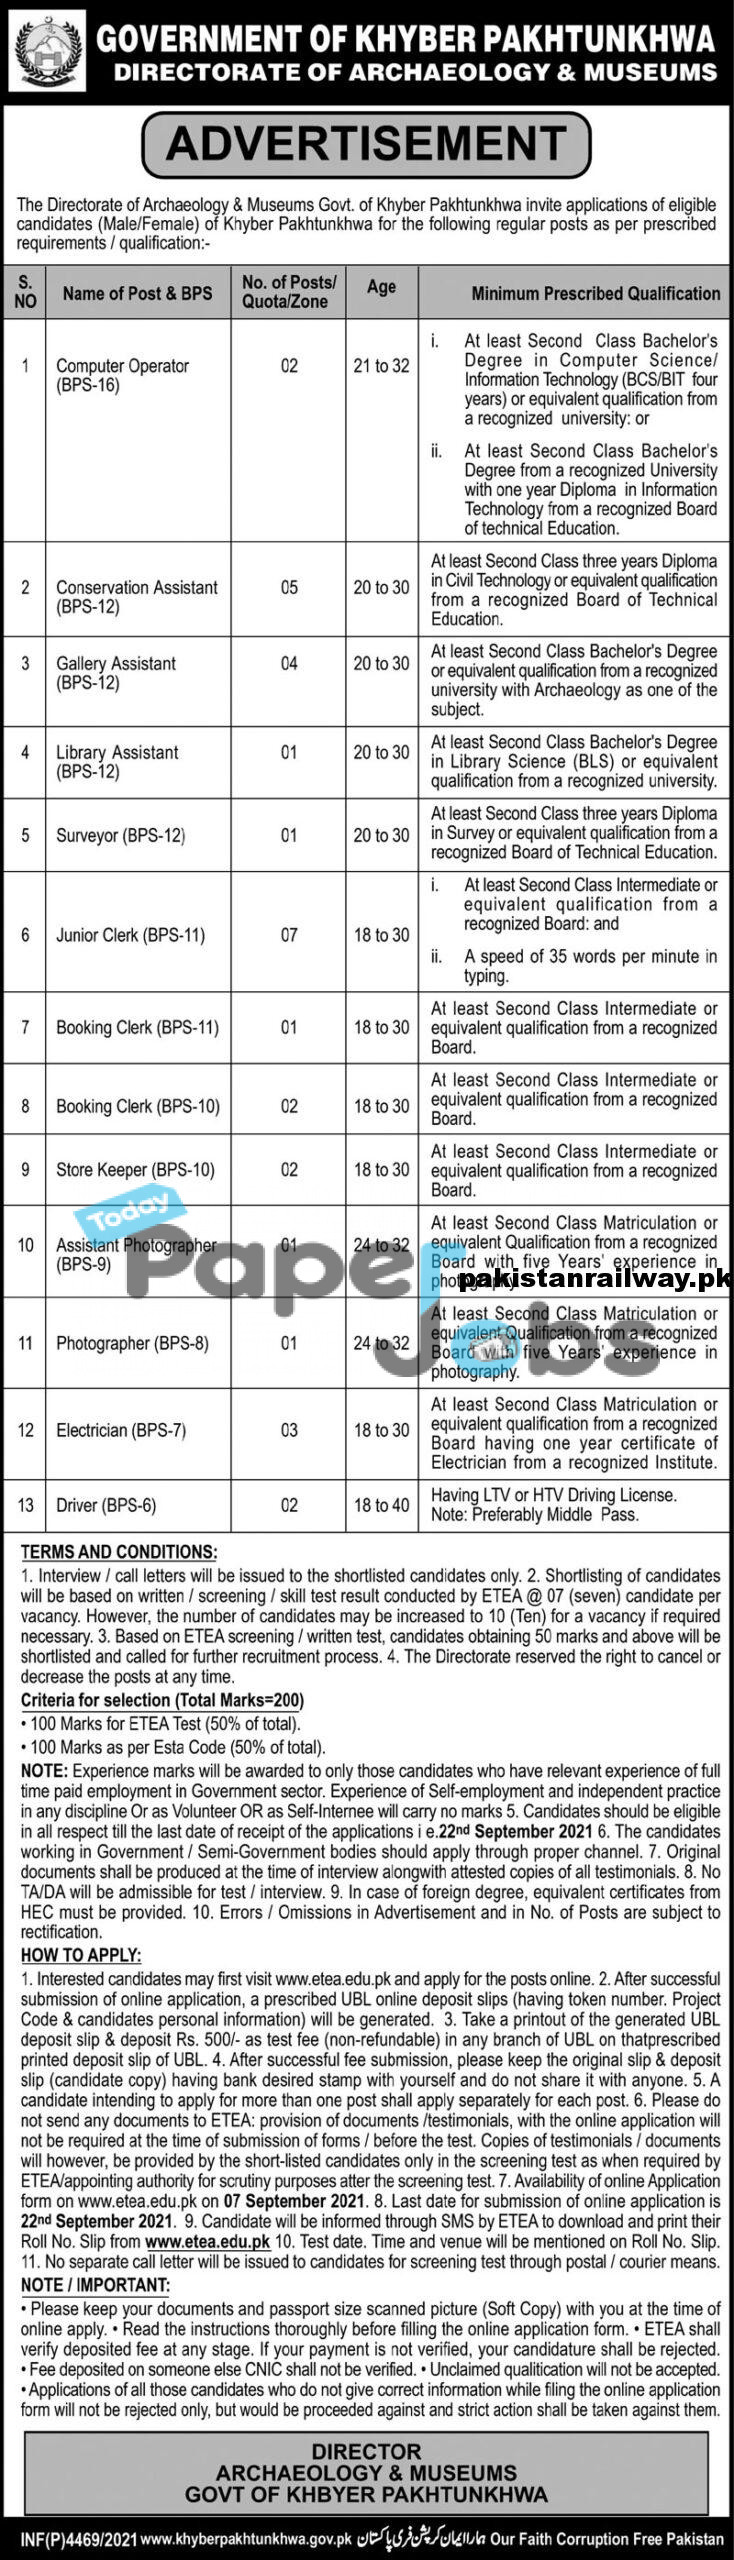 Government Of Khyber Pakhtunkhwa Directorate Archaeology and Museums Kpk Jobs 2021